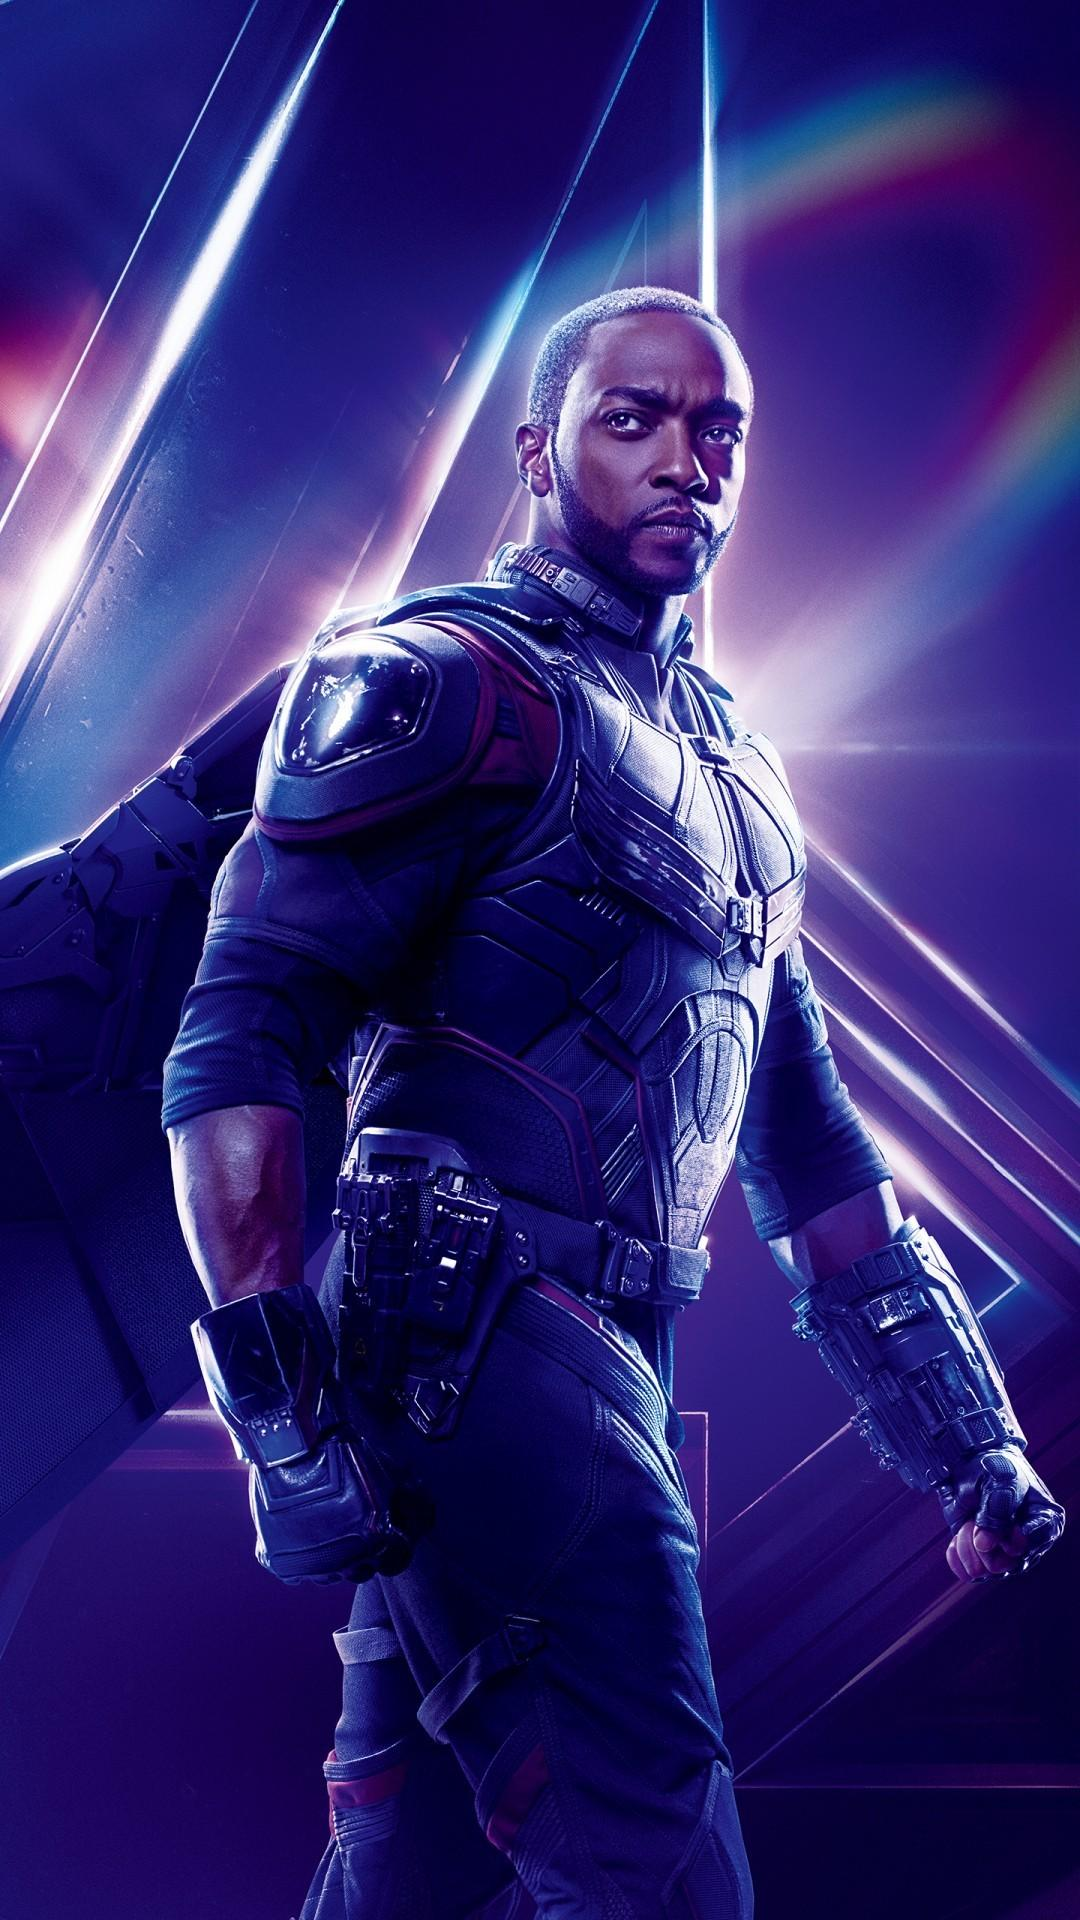 Free Anthony Mackie as Falcon in Avengers Infinity War phone